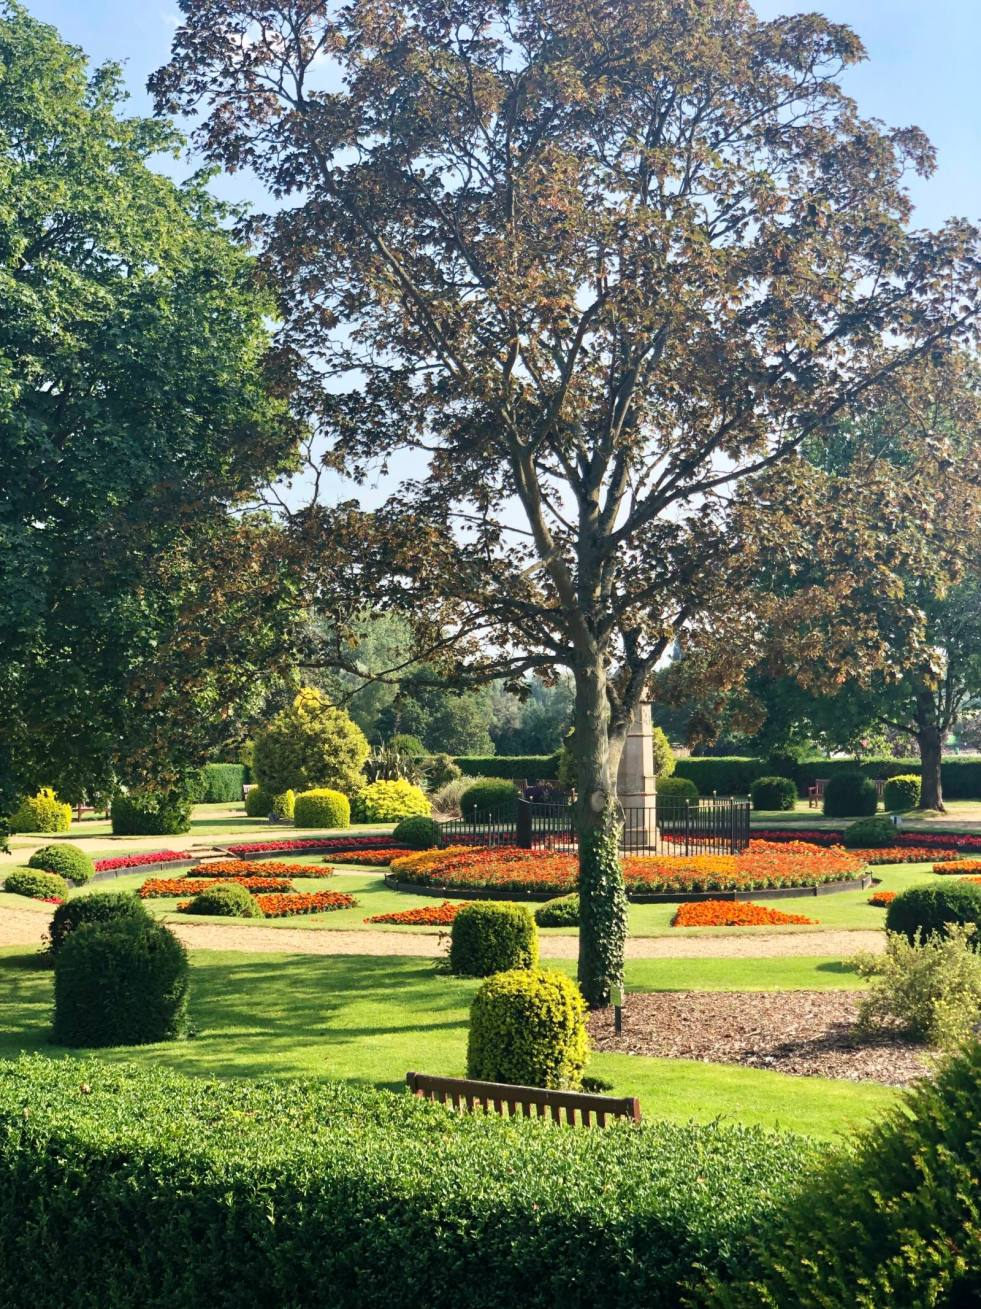 An image of green space an manicured trees in Wicksteed Park. The UK's oldest theme park, found in Kettering. A landscaped grade II listed garden with manicured borders. Fashion Voyeur Blog